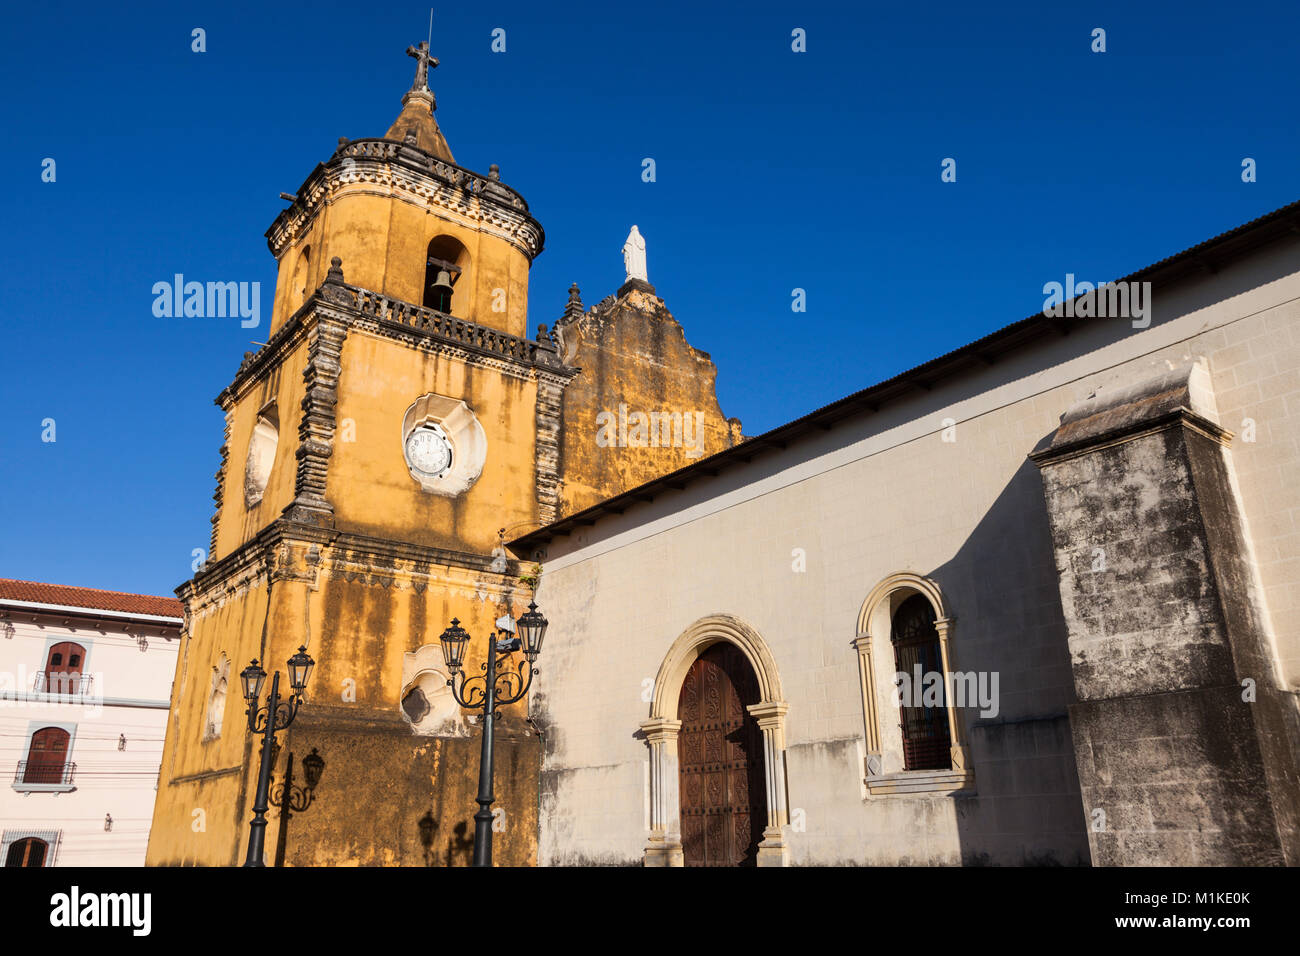 Church The Recollection in Leon. Leon, Nicaragua. - Stock Image